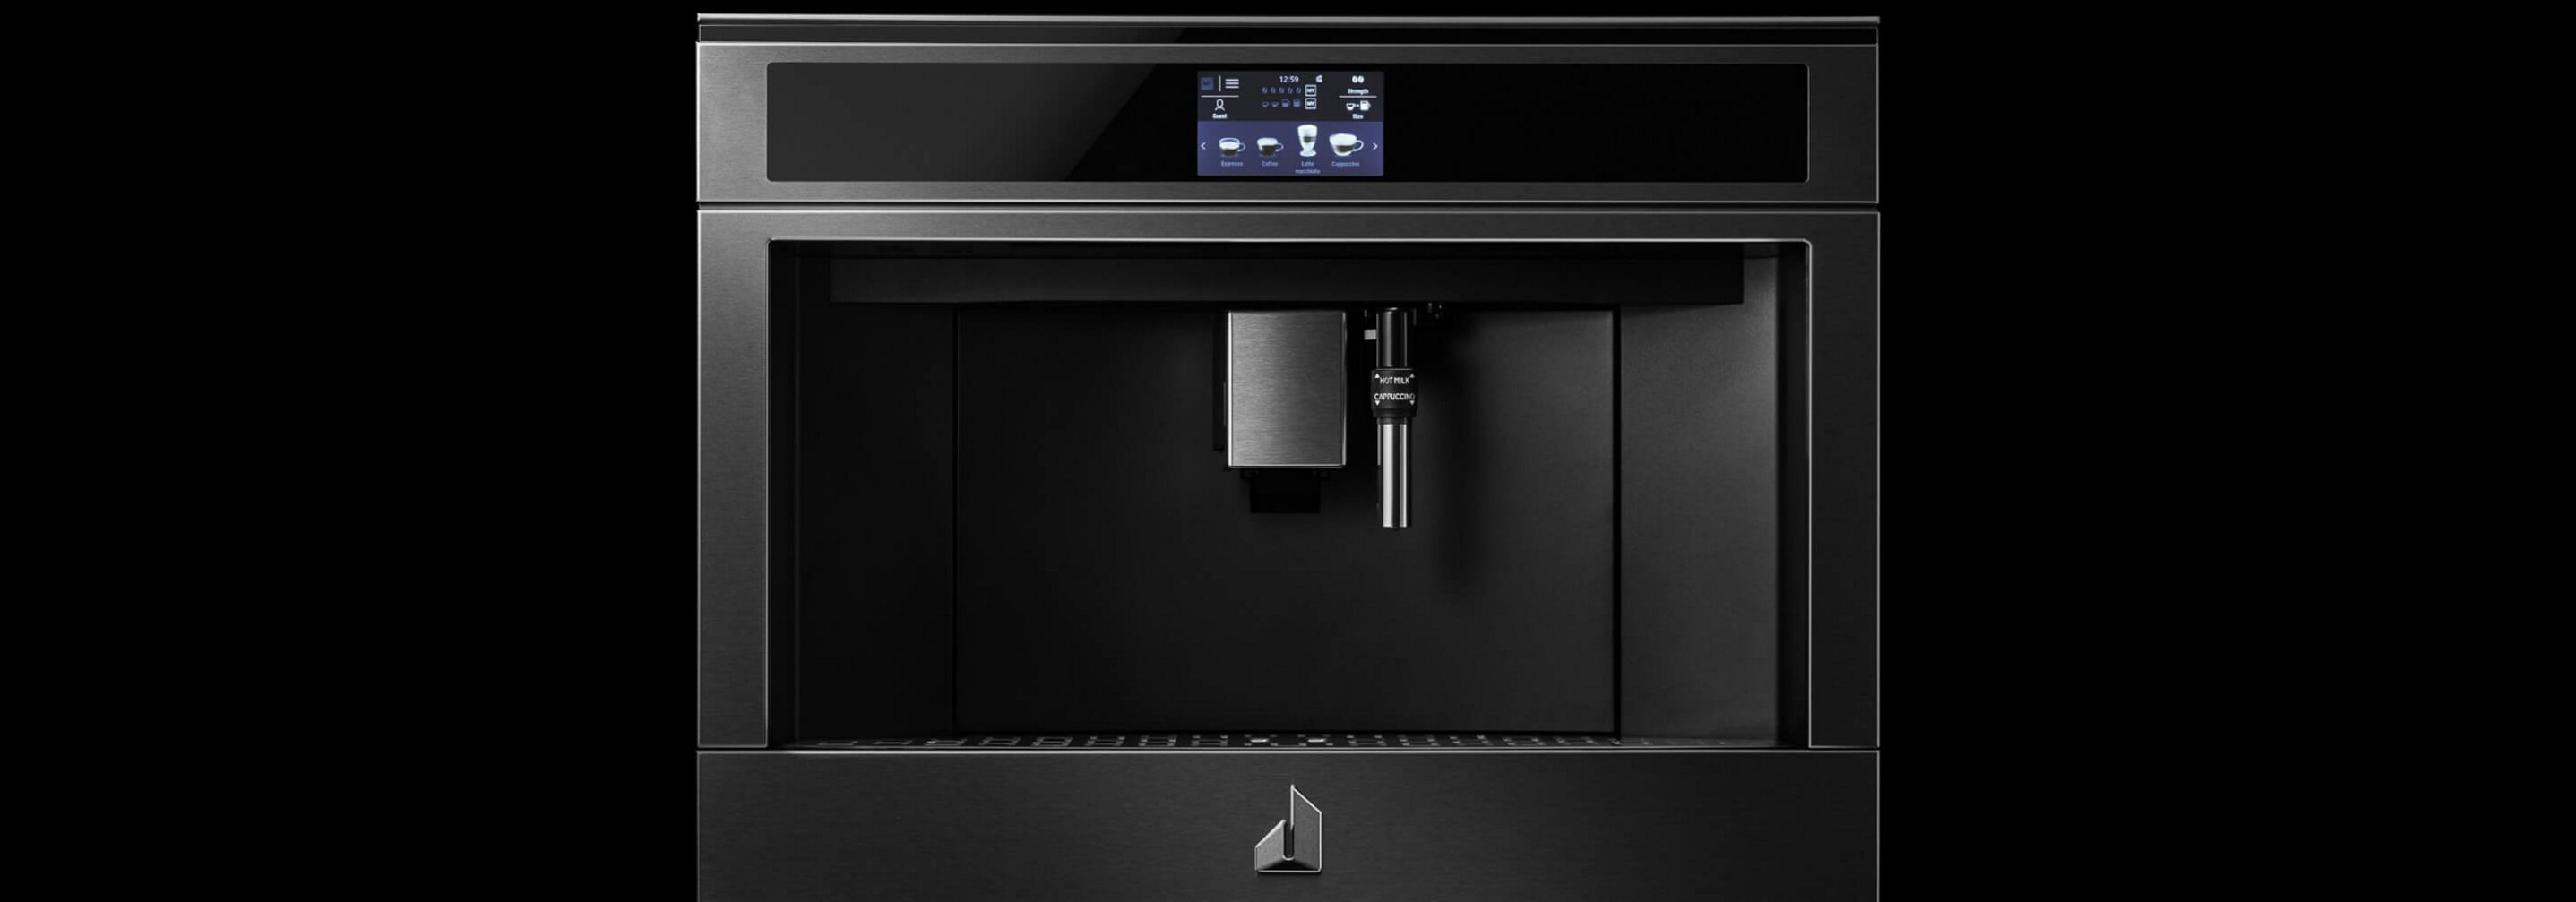 The JennAir® 24-inch built-in coffee maker.